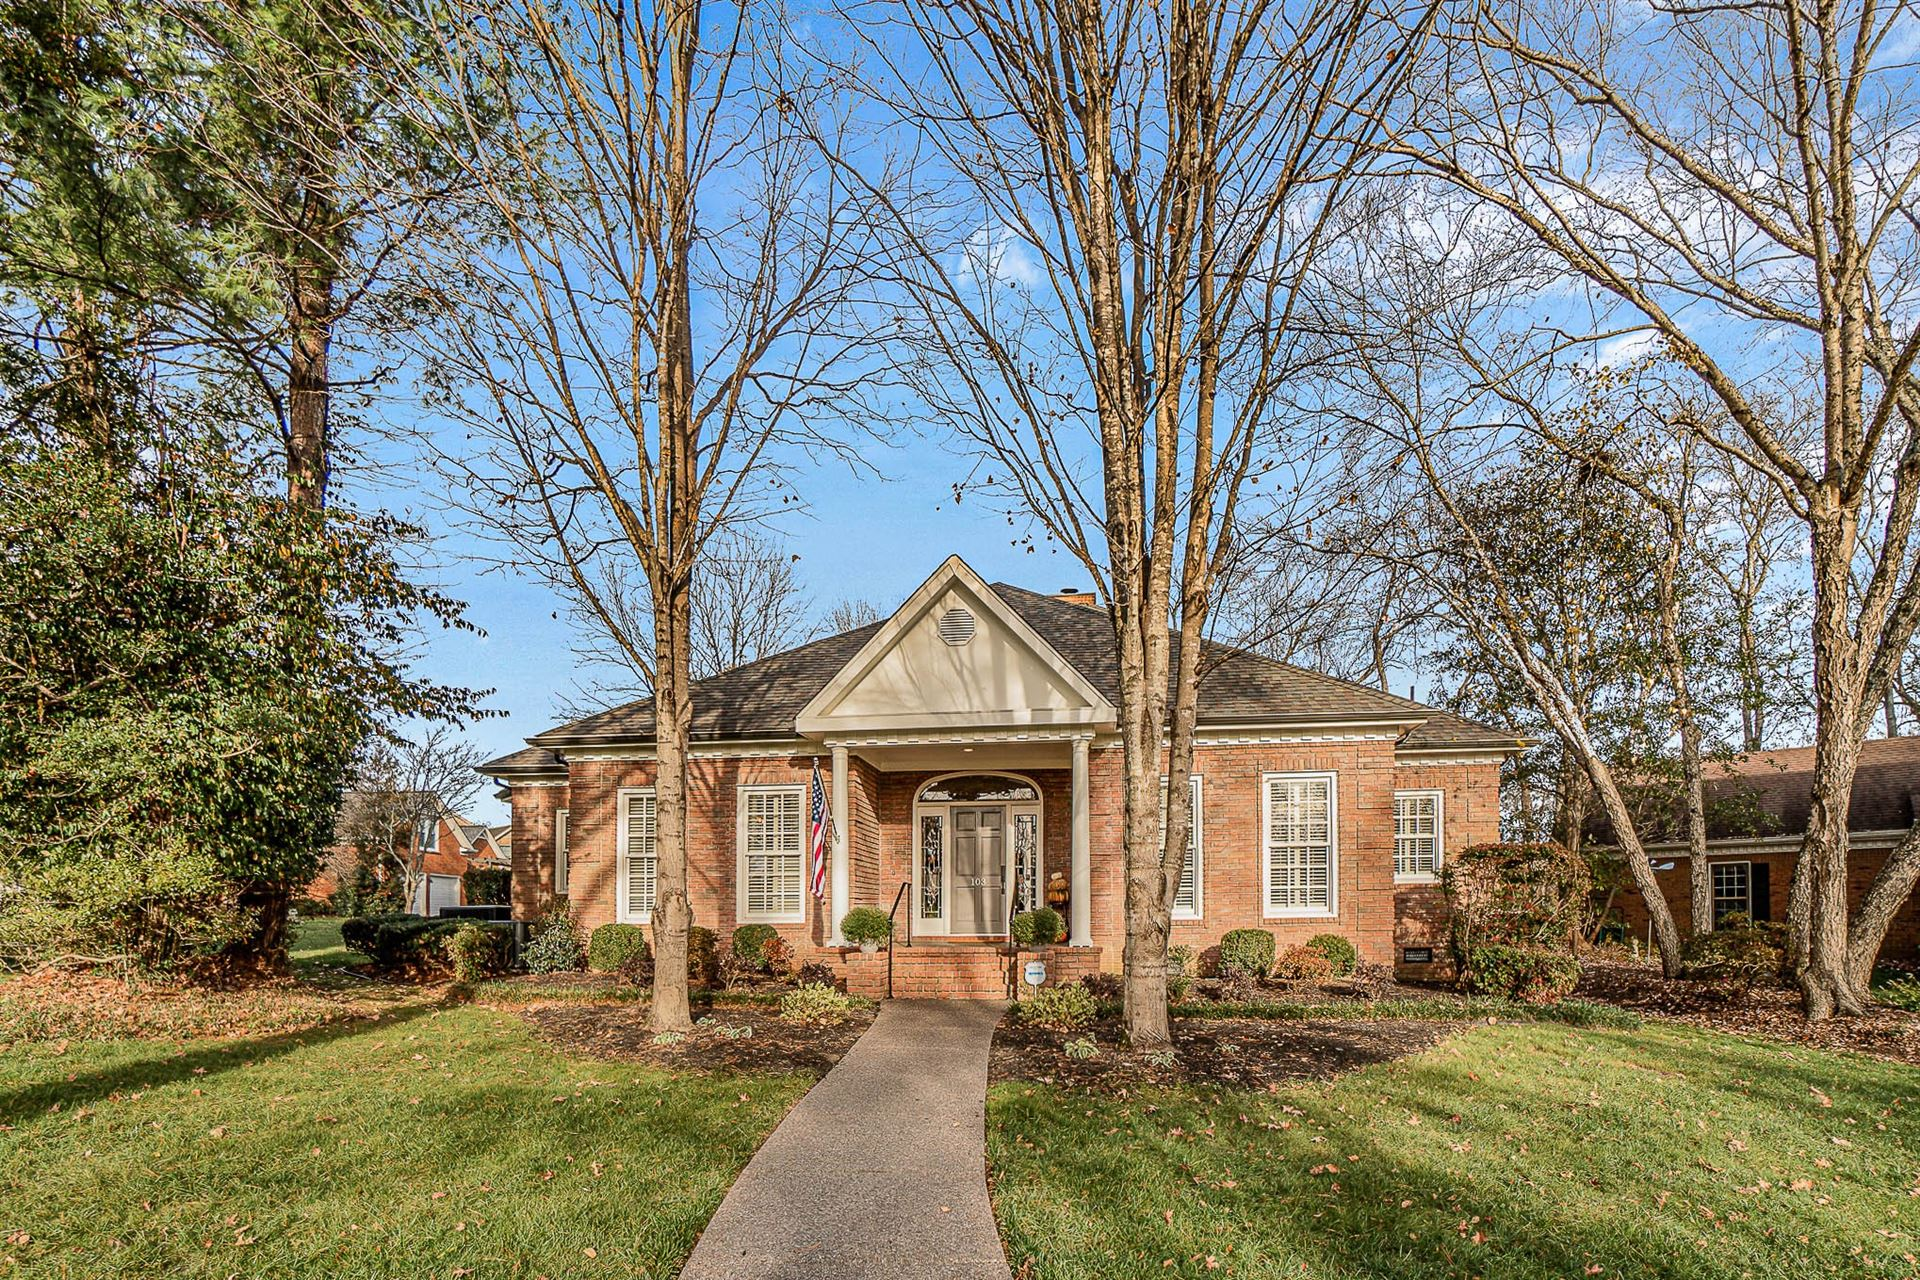 103 Wren Court, Franklin, TN 37064 - MLS#: 2210163